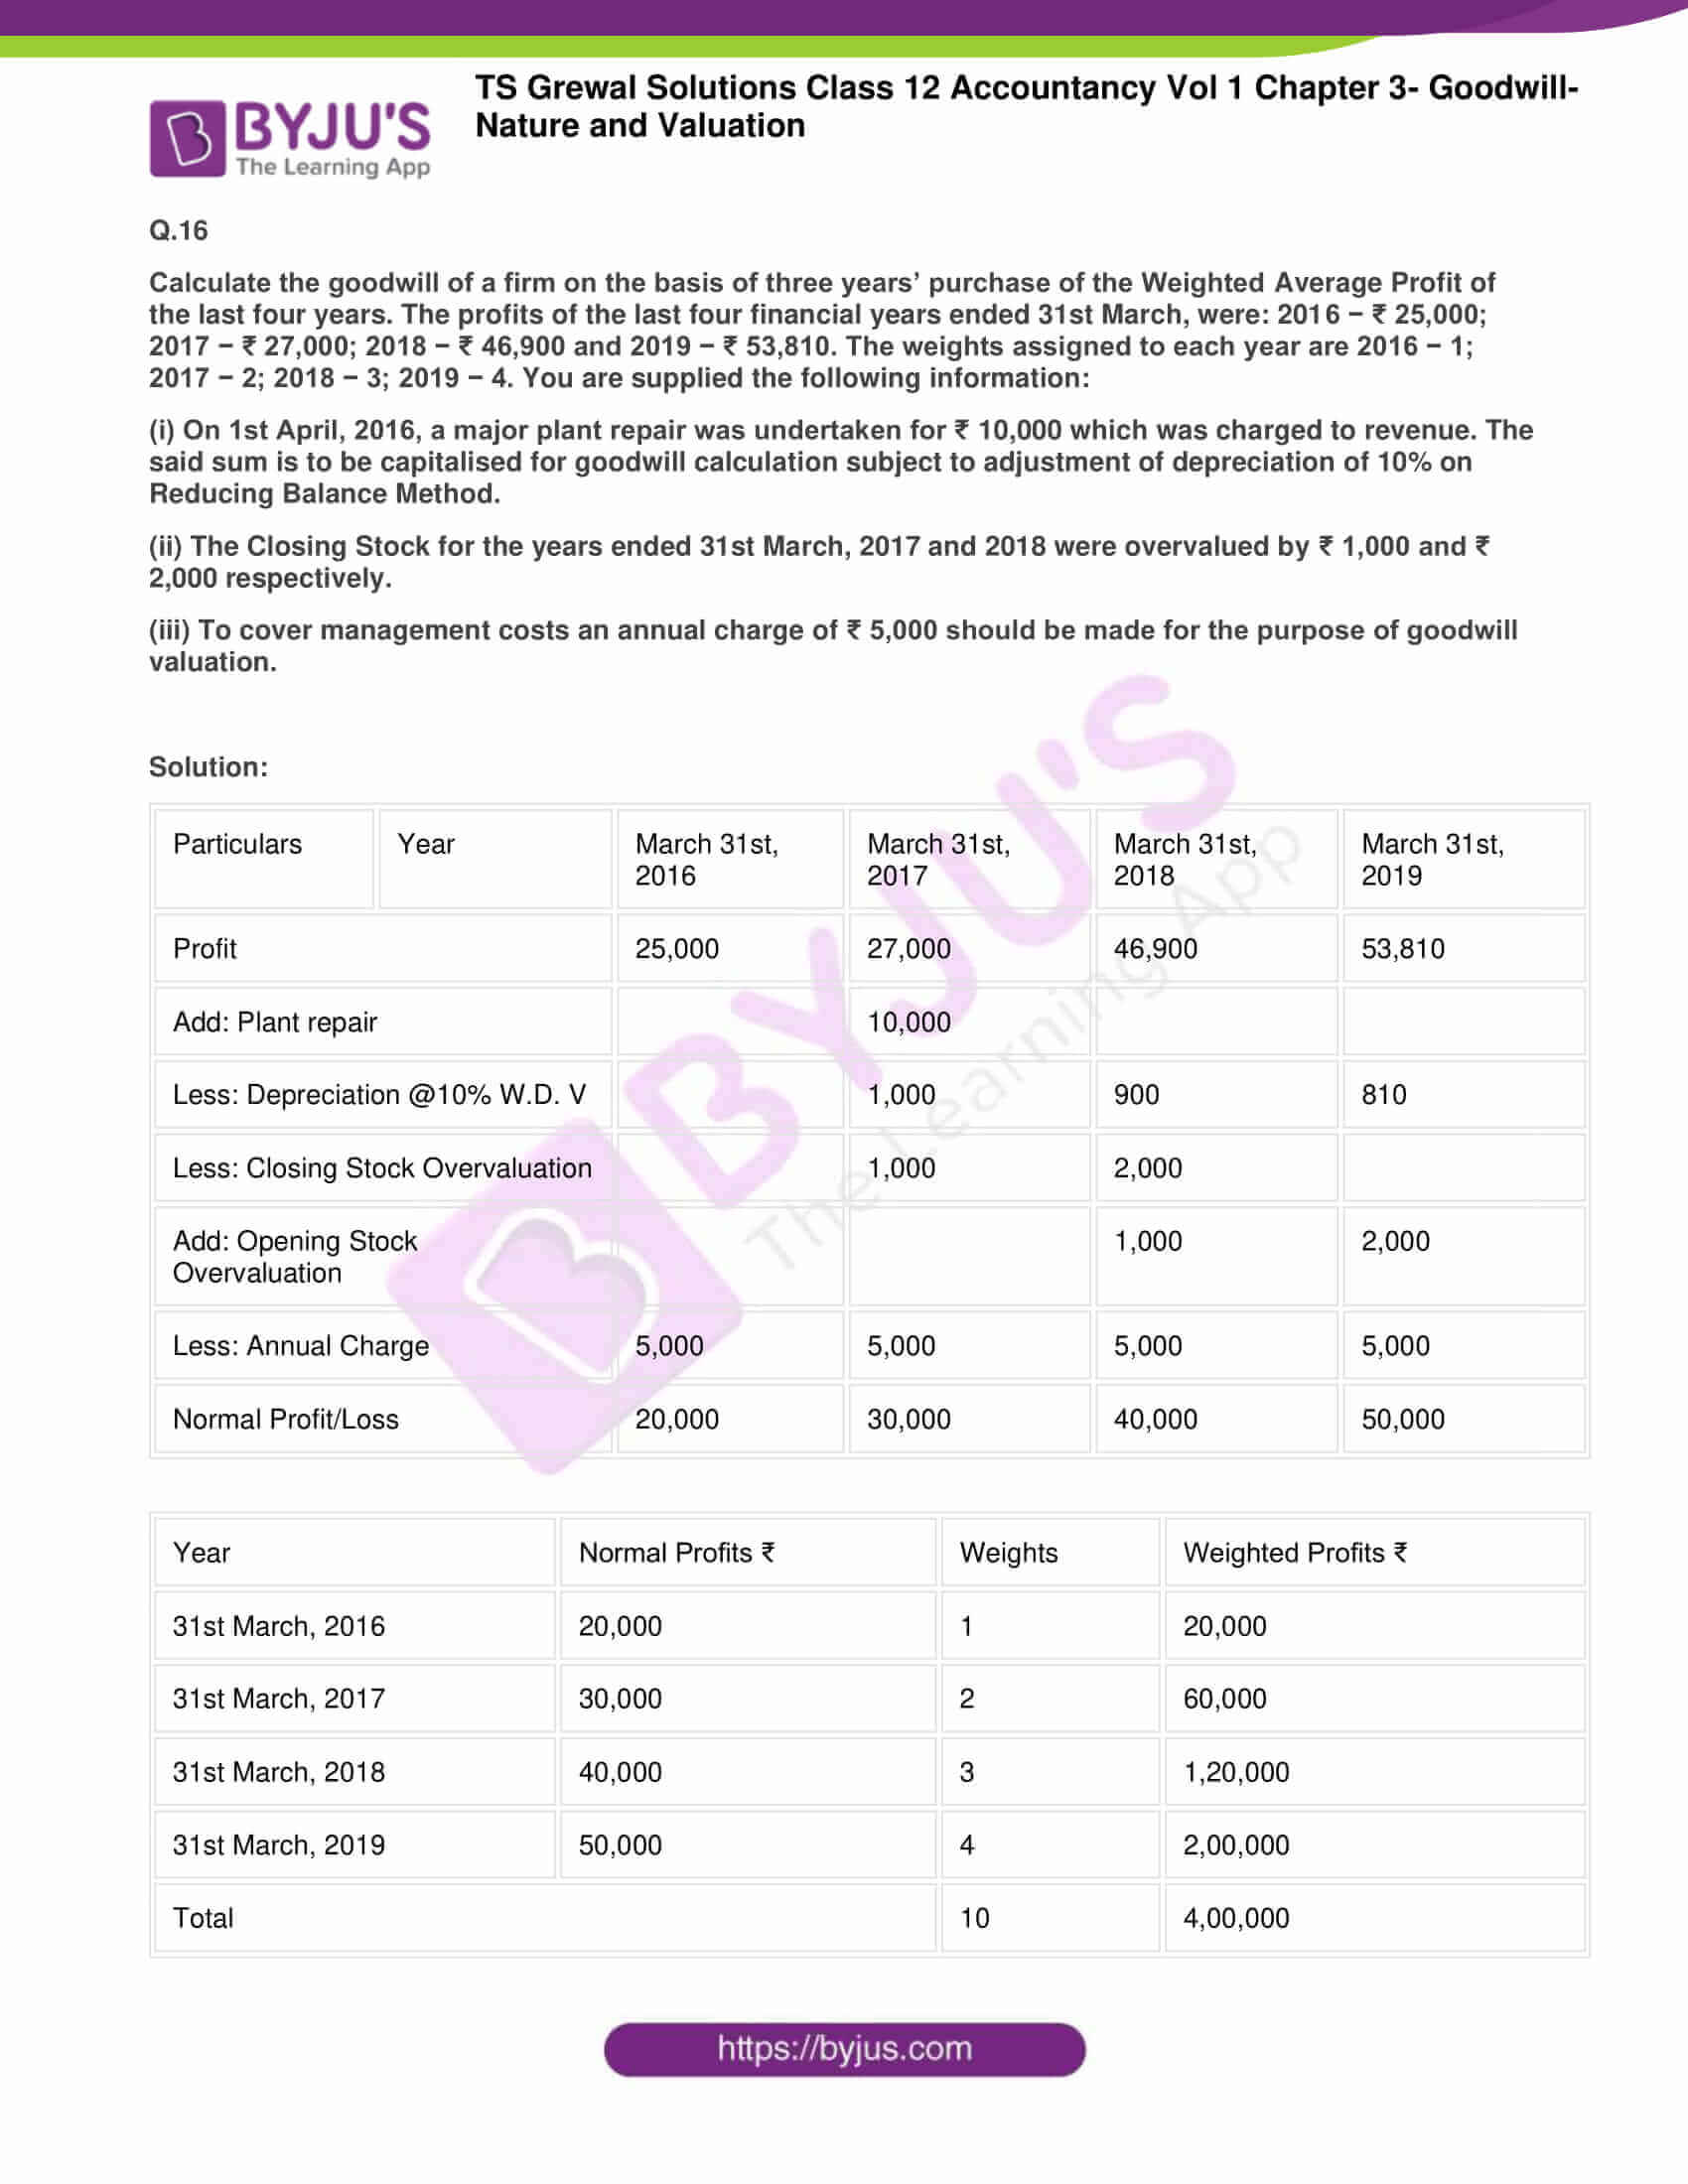 ts grewal solutions for class 12 accountancy vol 1 chapter 314